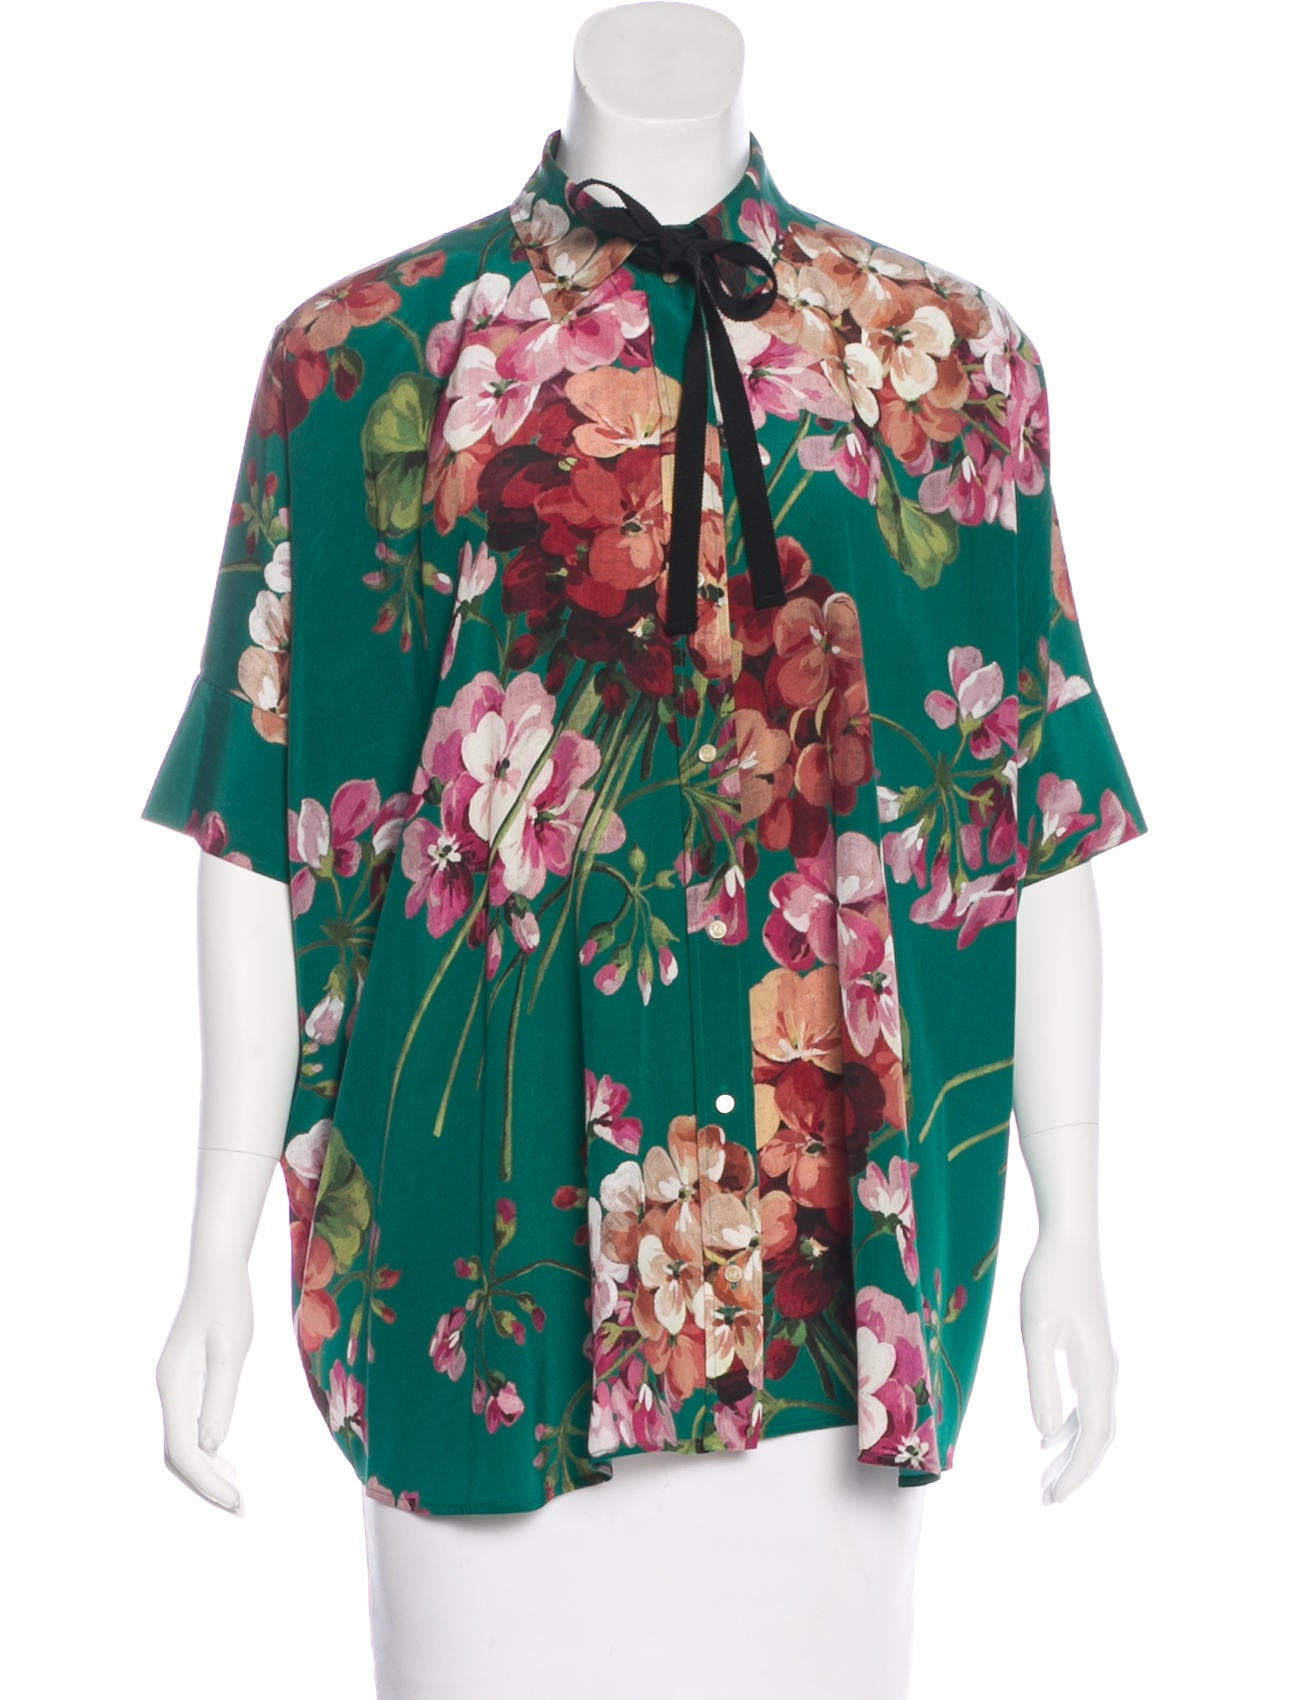 9f5a75be Gucci Blooms Silk Blouse - Clothing - GUC178733 | The RealReal